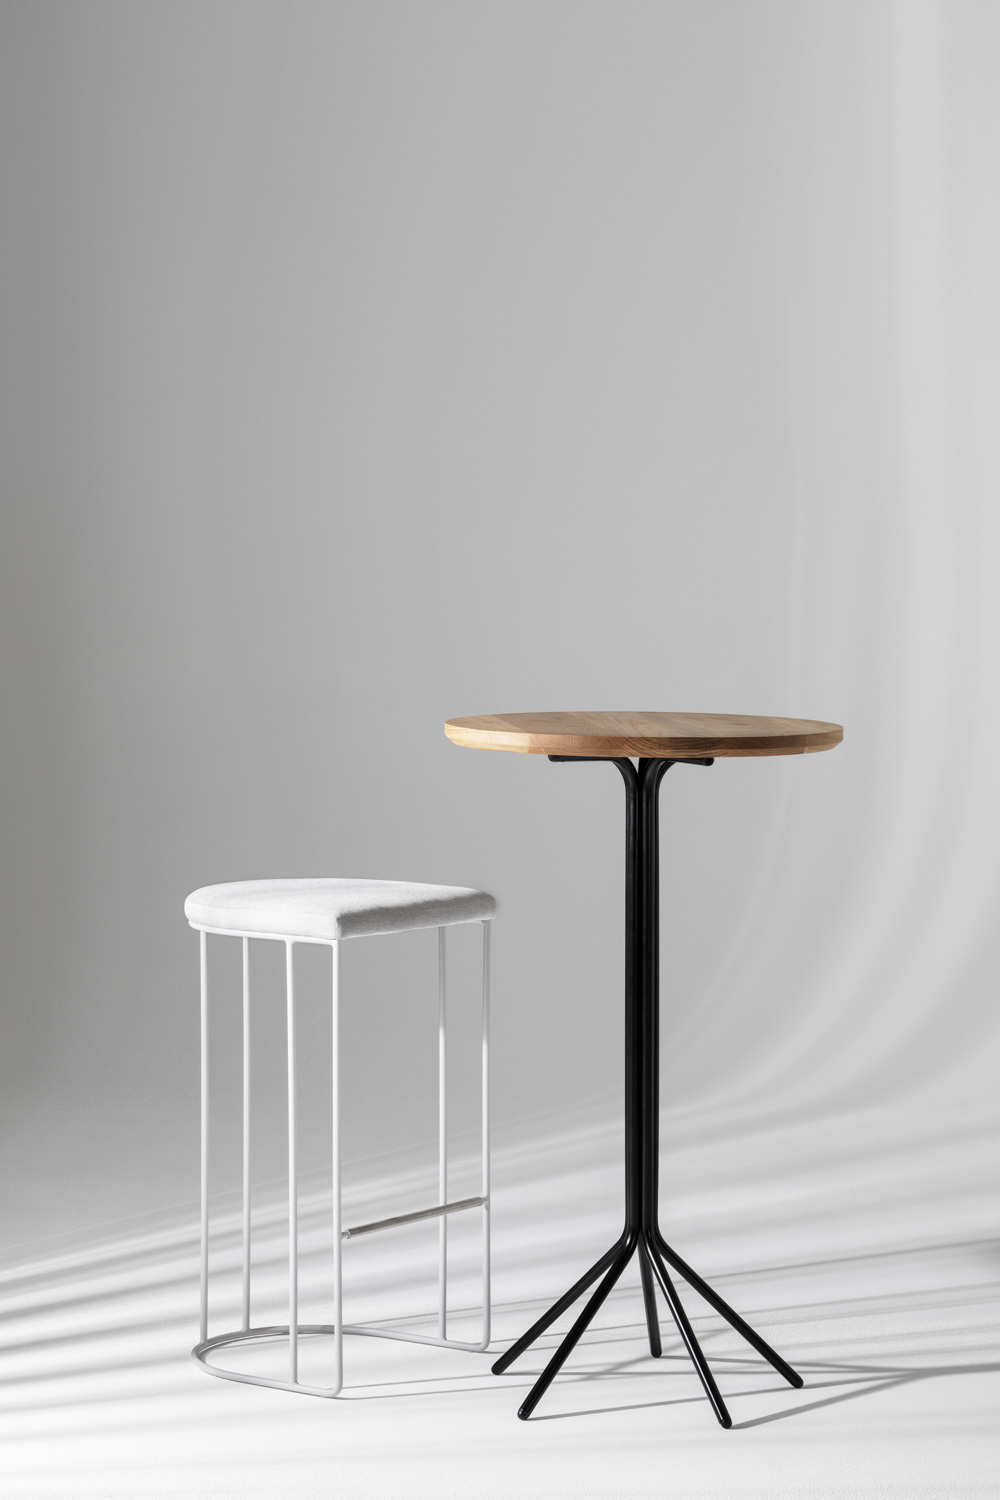 The Etoile table at bar height 1050mm